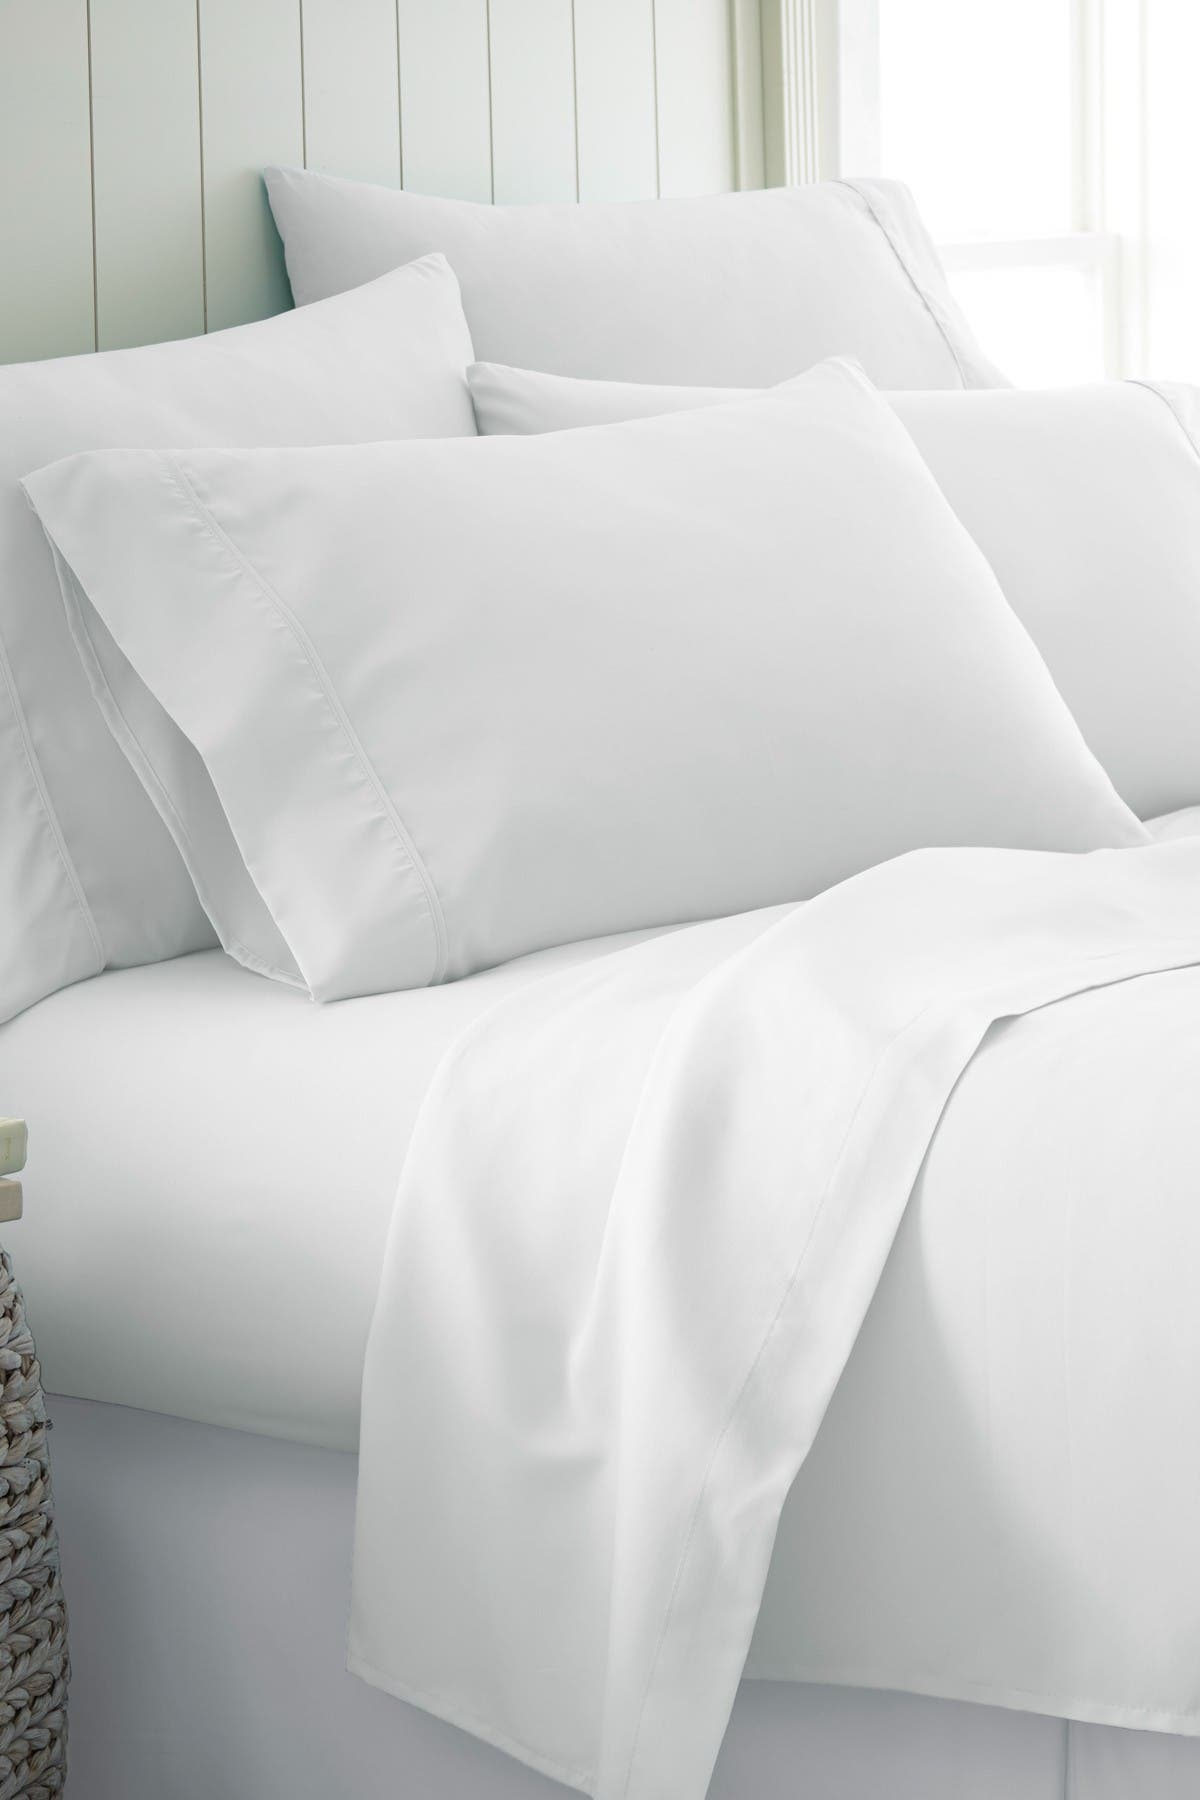 Image of IENJOY HOME King Hotel Collection Premium Ultra Soft 6-Piece Bed Sheet Set - White